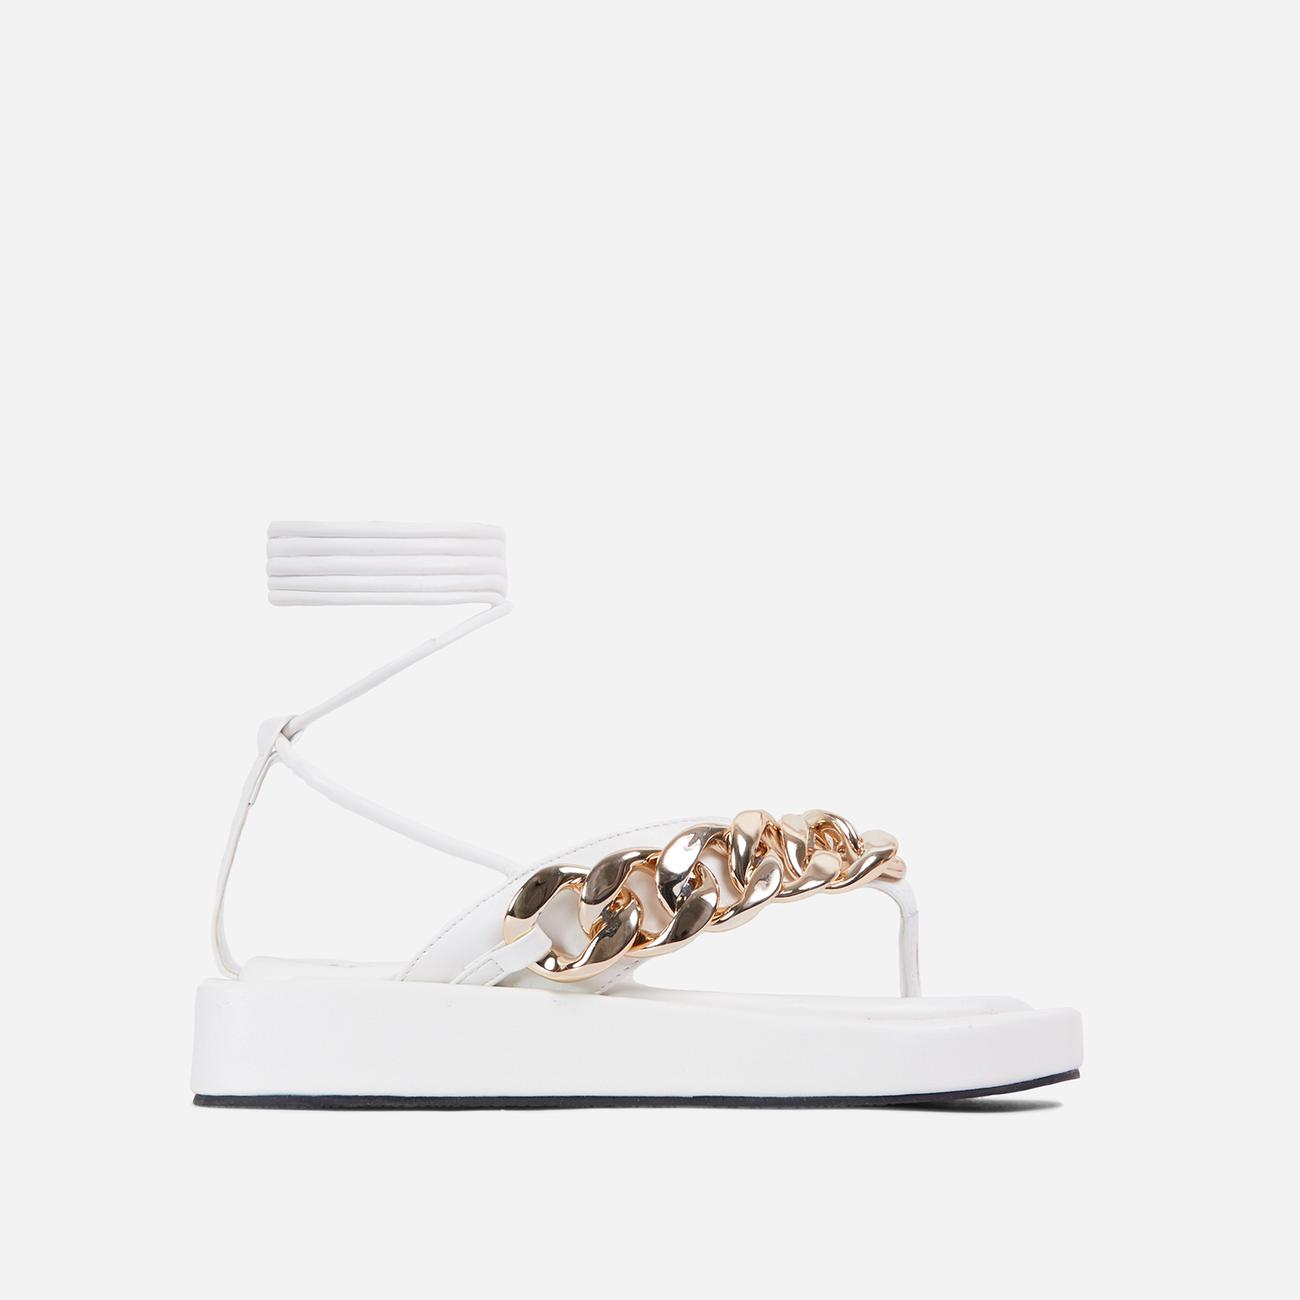 Hidden-Gems Chain Thong Detail Lace Up Platform Gladiator Sandal In White Faux Leather Image 1